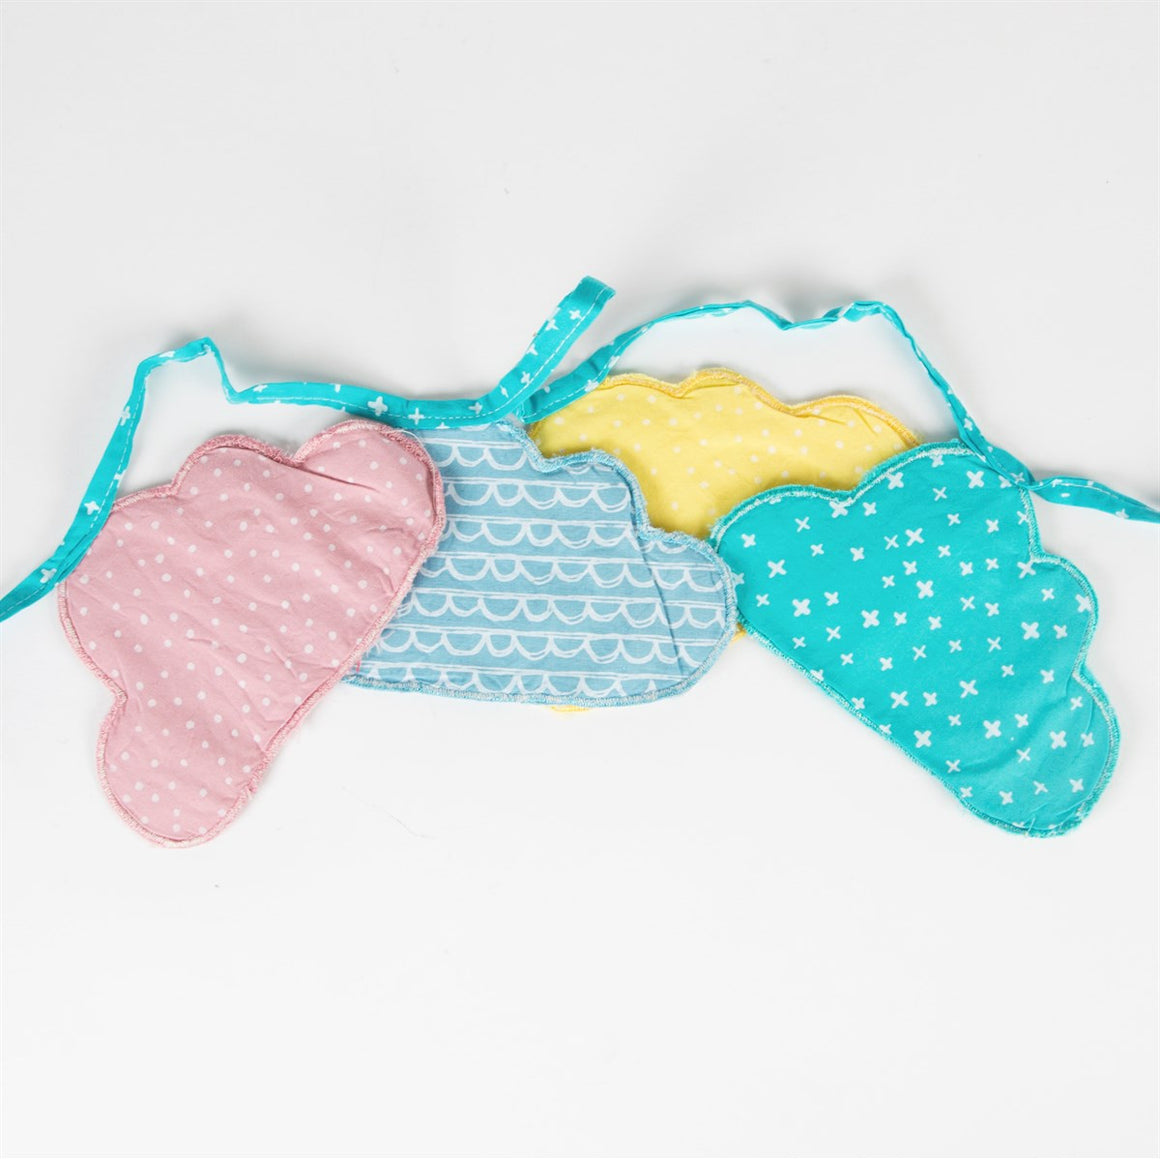 Pastel Cloud Fabric Bunting - The Love Trees